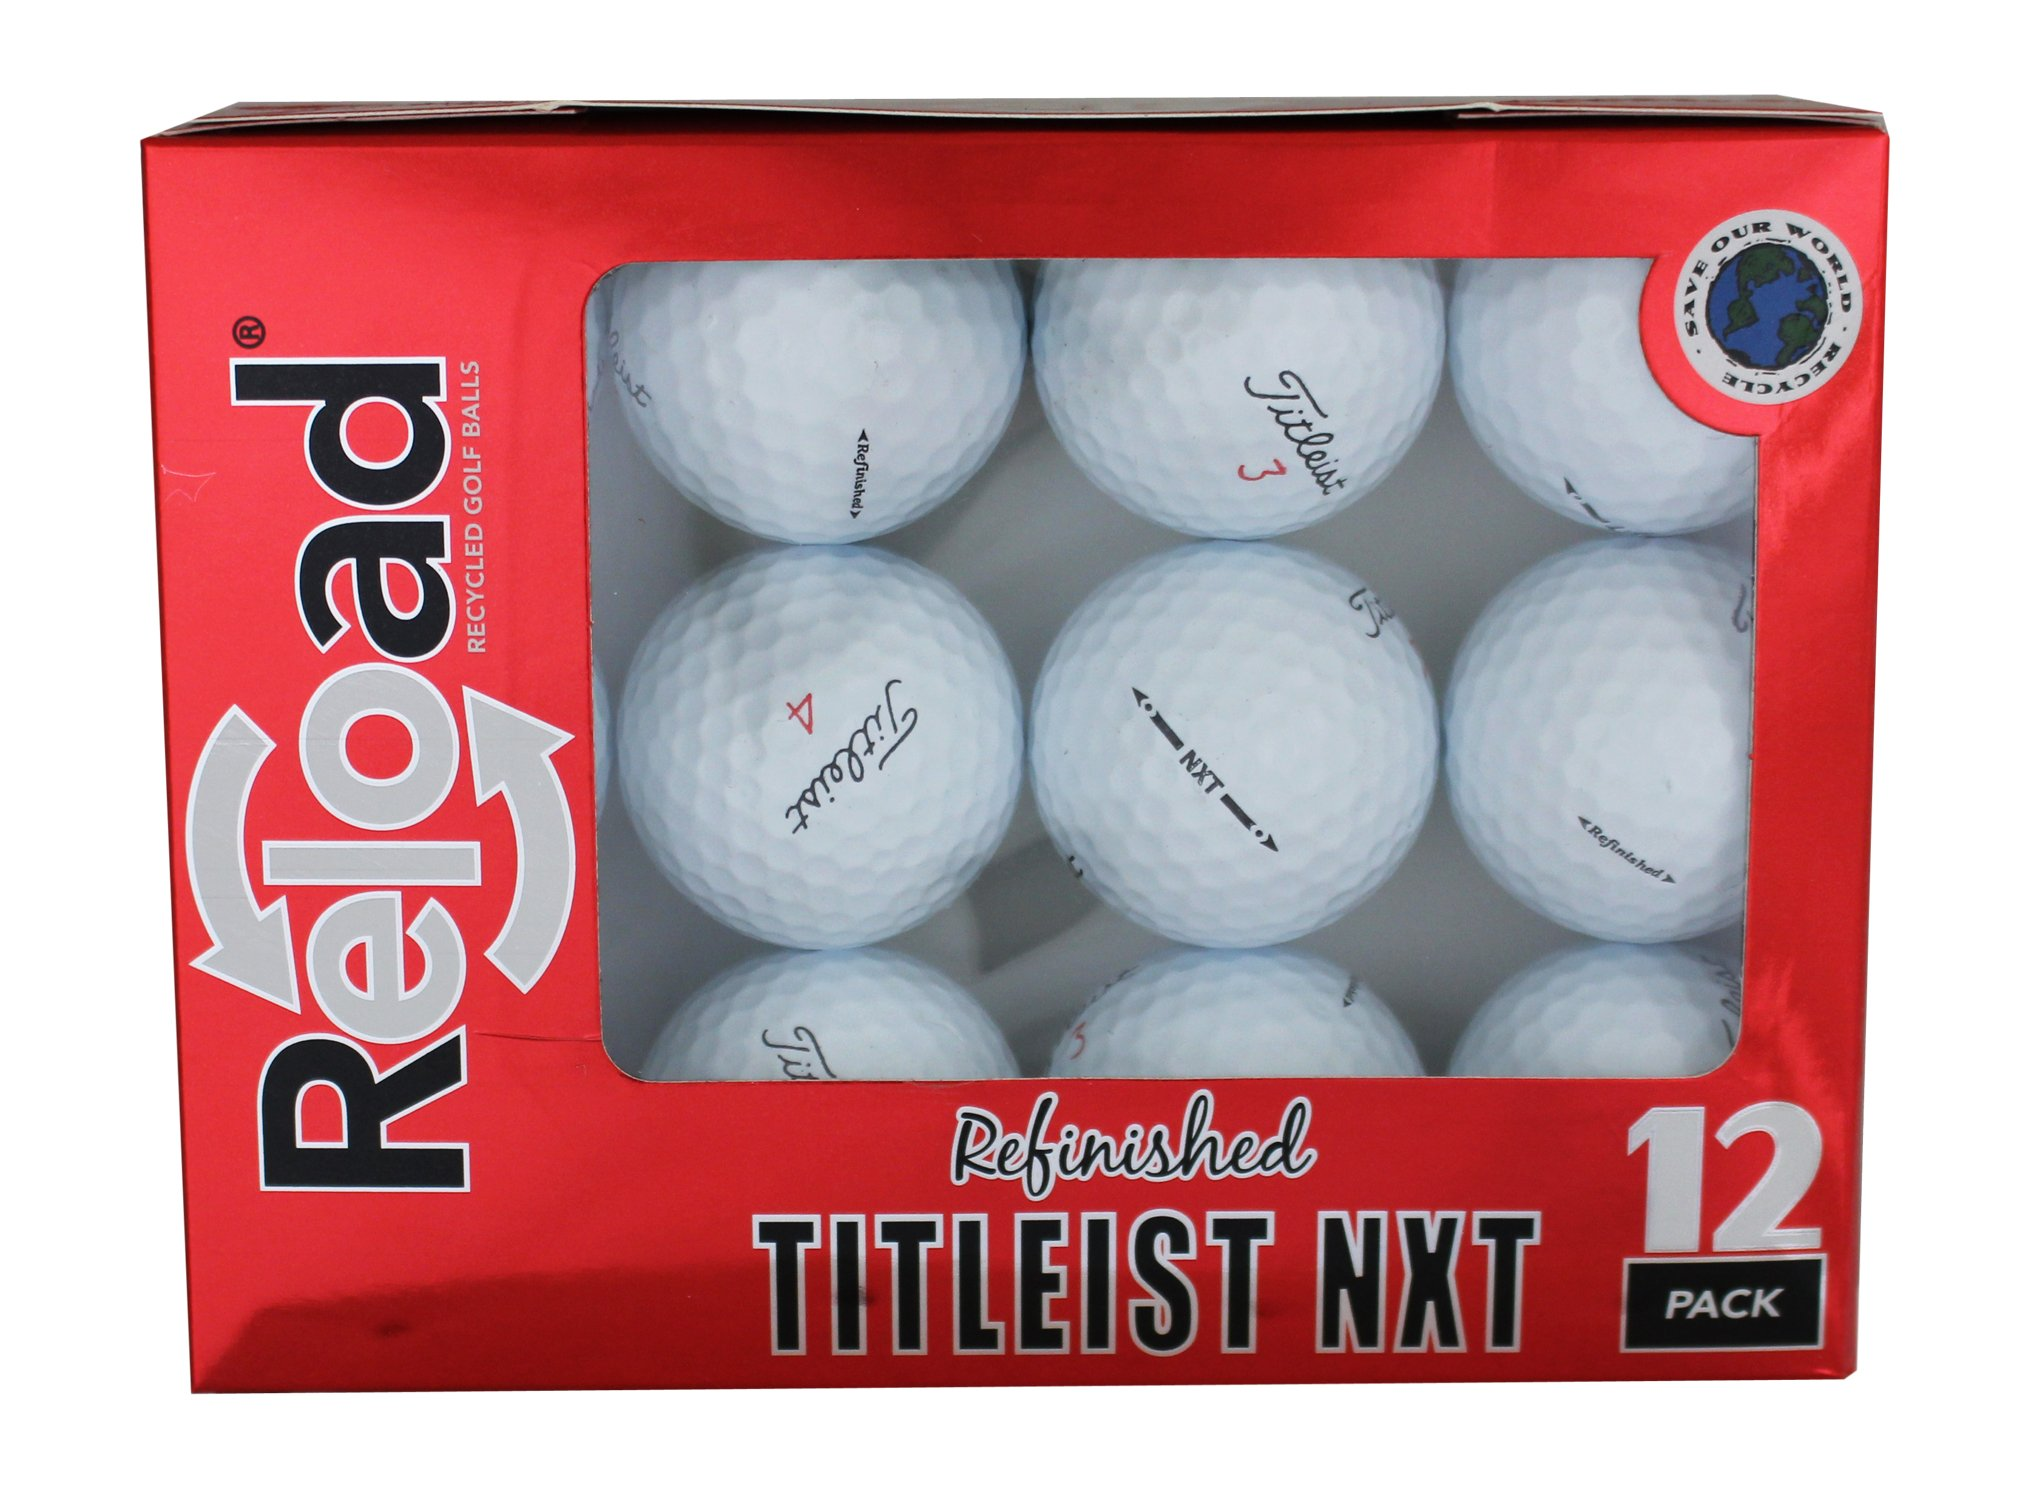 Titleist Reload Recycled Golf Balls NXT Refurbished Golf Balls (12 Pack)